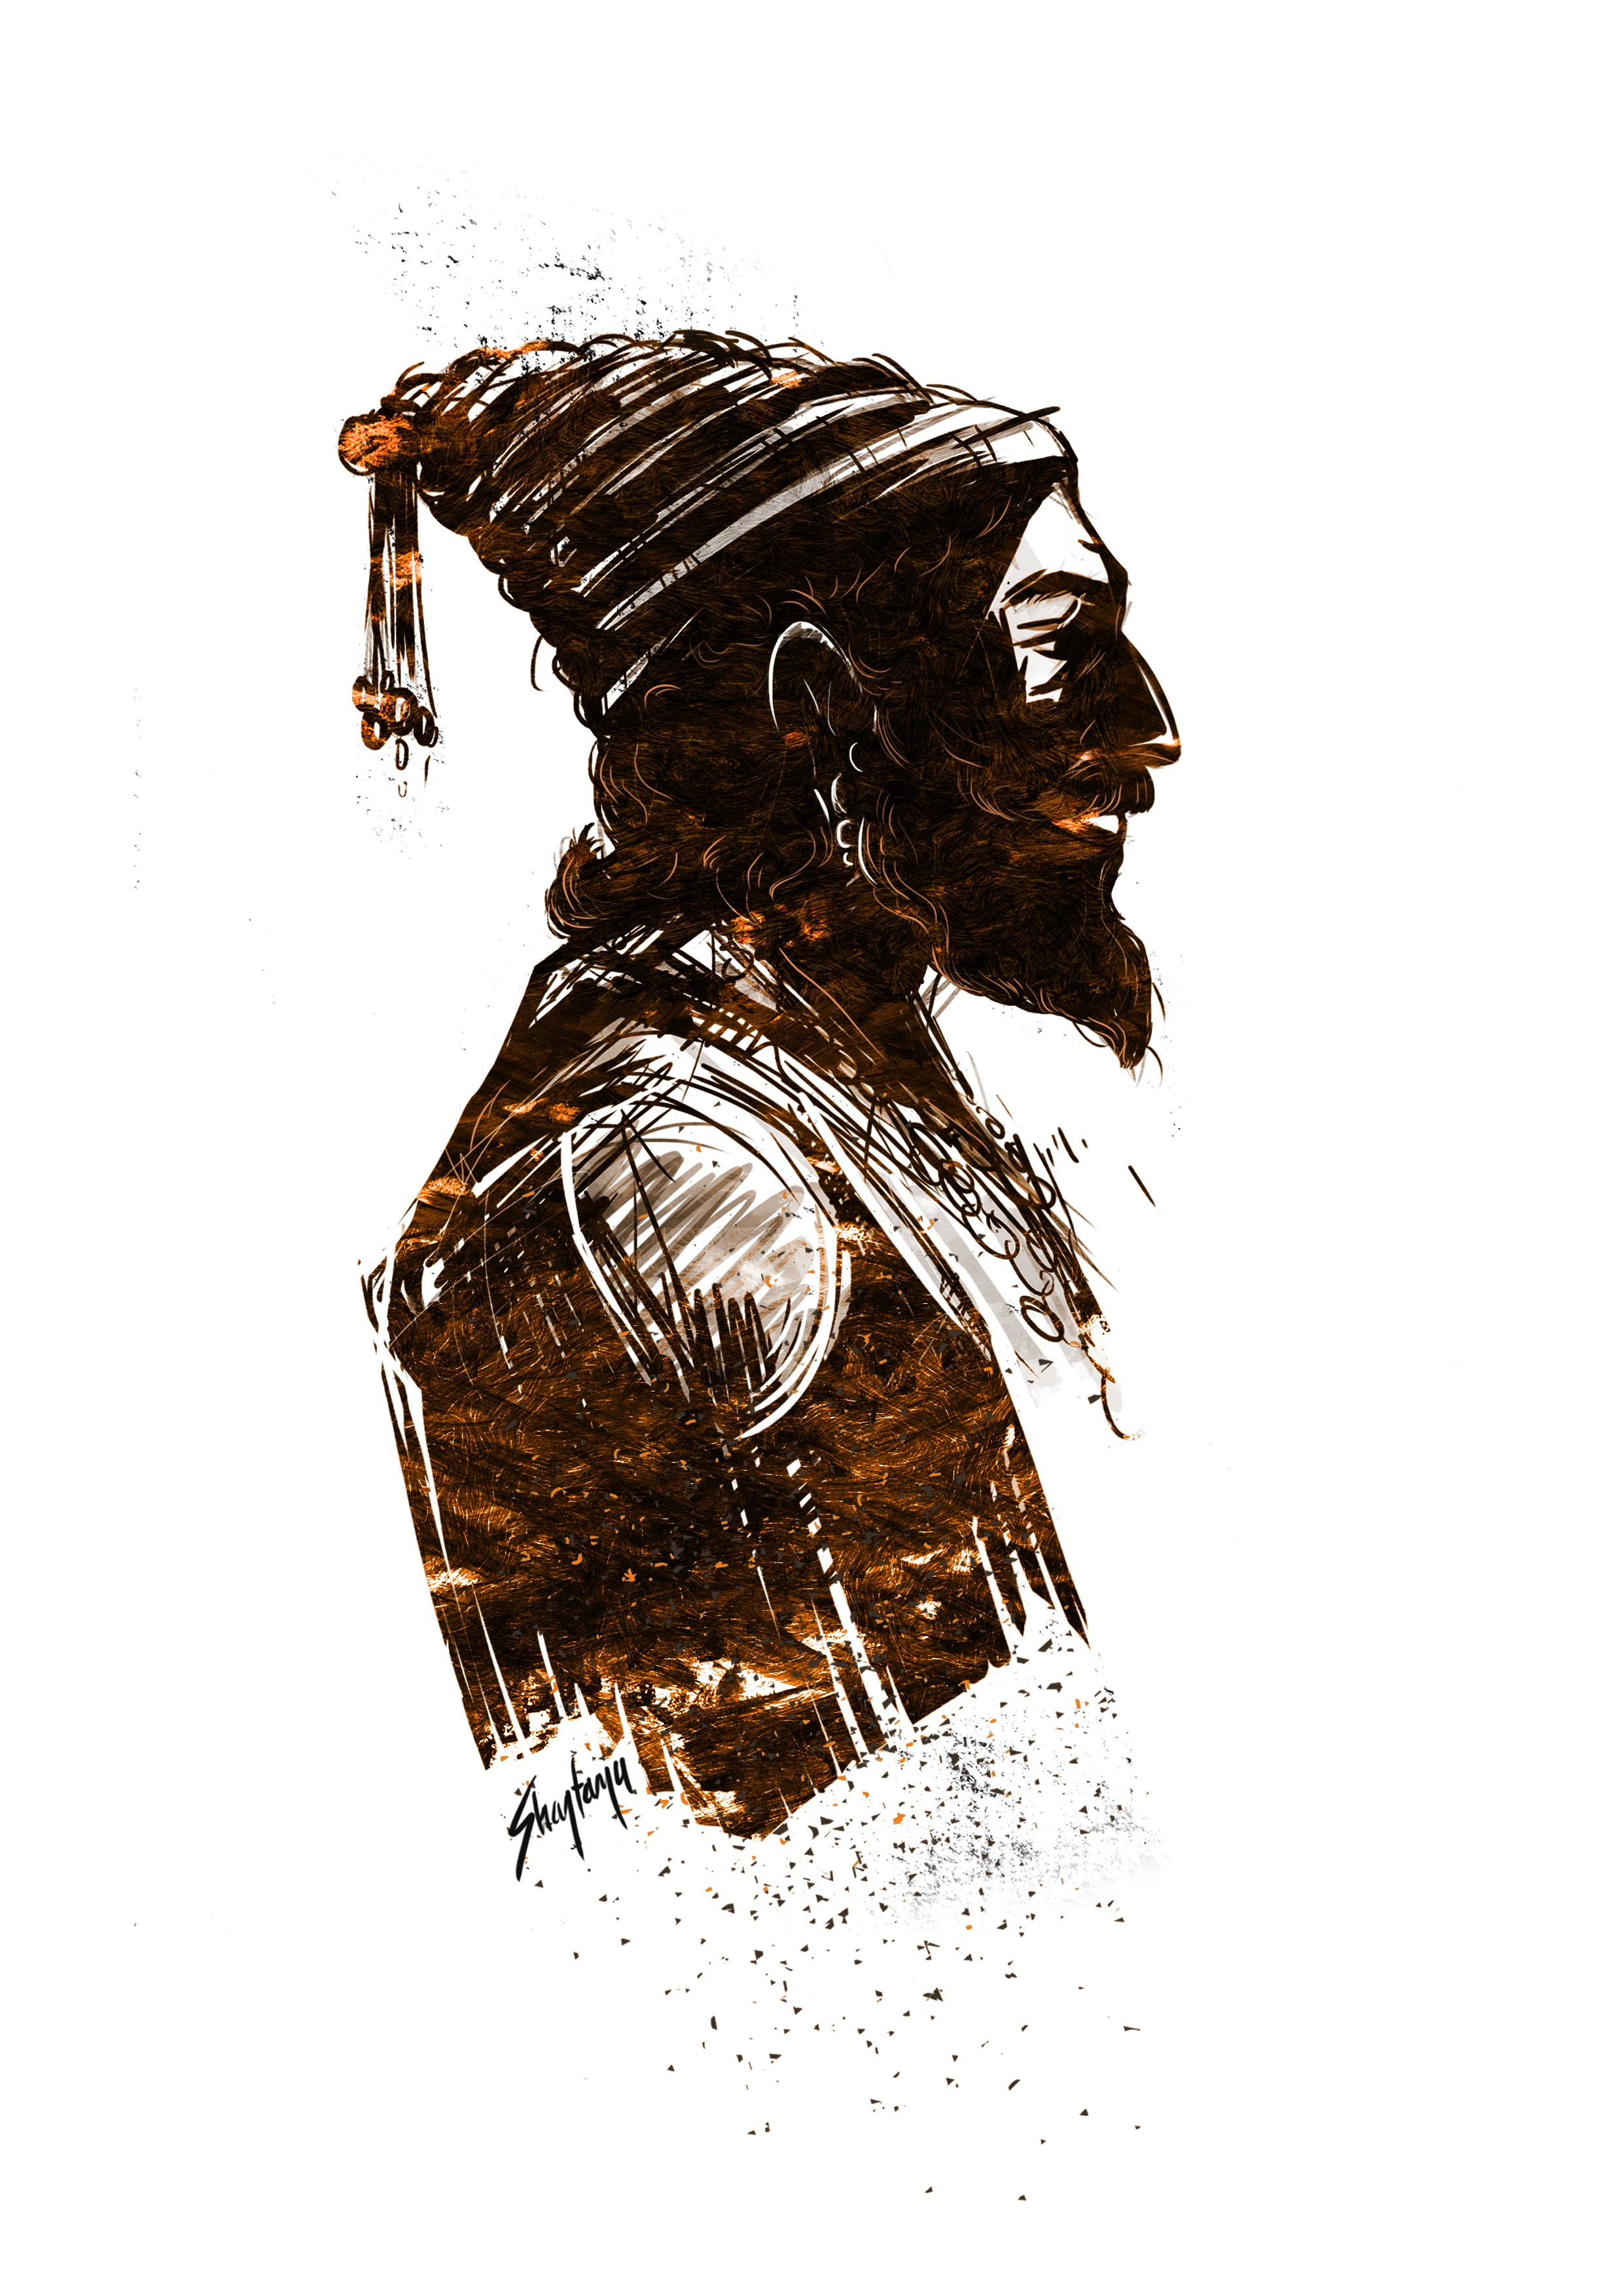 Shivaji Maharaj Shivaji Maharaj Tattoo, Shivaji Maharaj - Shivaji Maharaj Powada Marathi , HD Wallpaper & Backgrounds